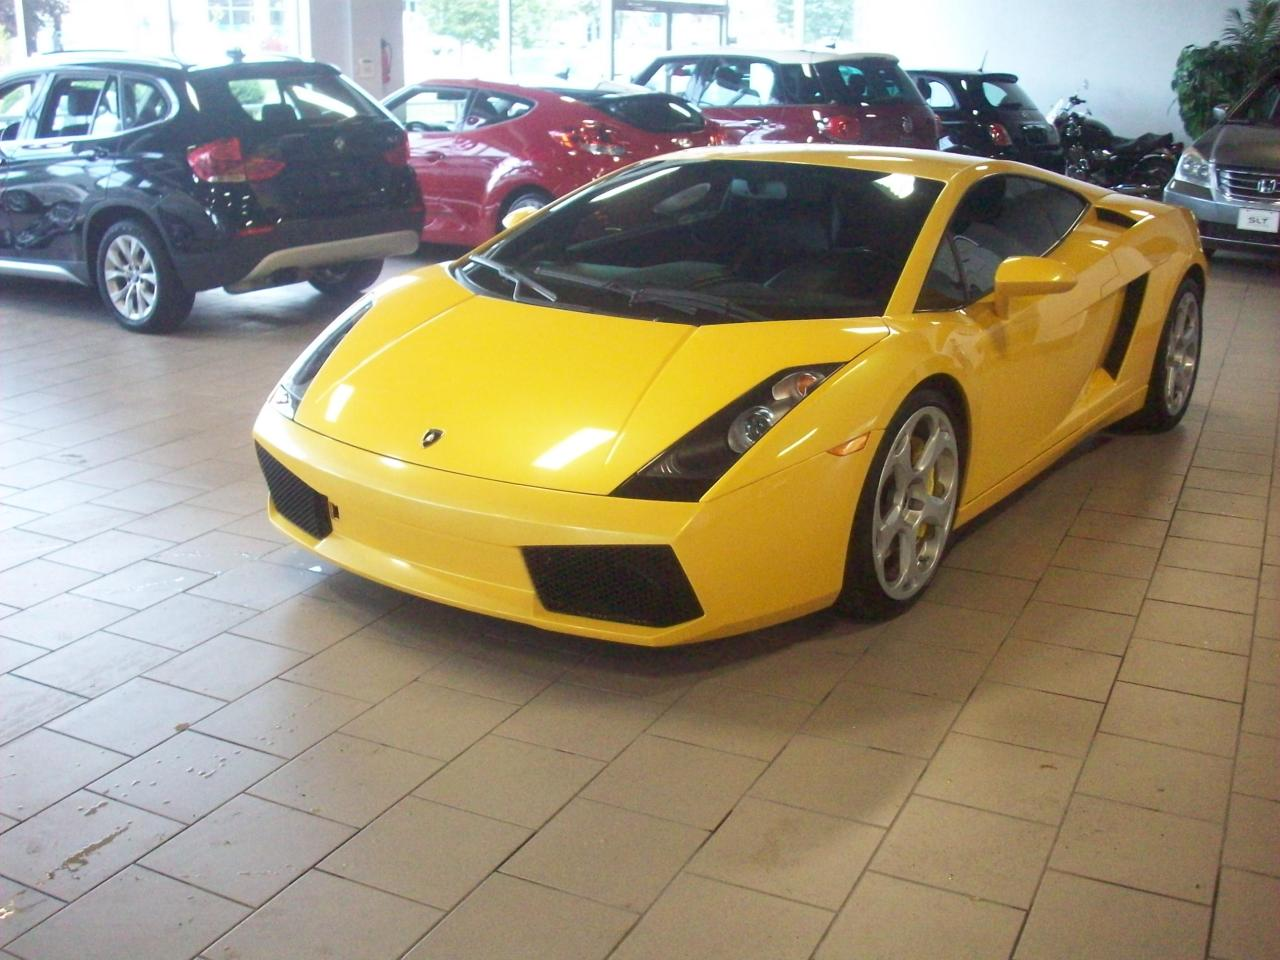 used 2004 lamborghini gallardo for sale in markham. Black Bedroom Furniture Sets. Home Design Ideas